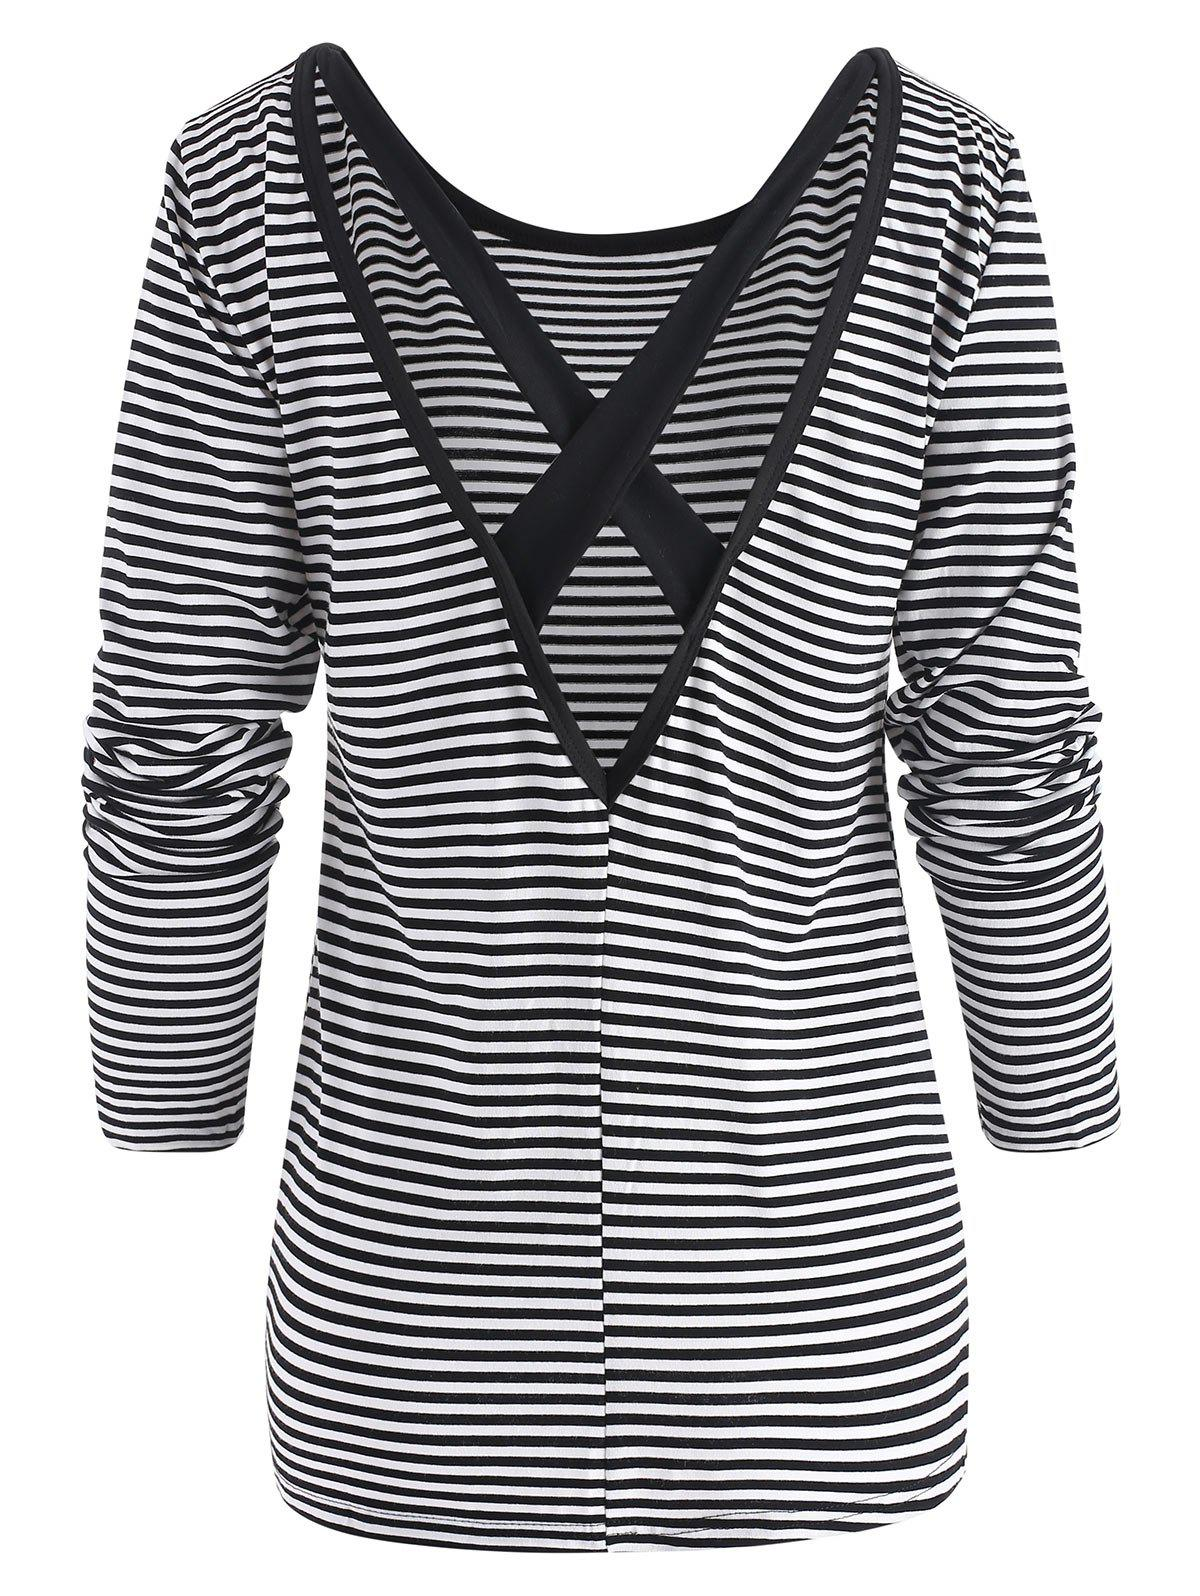 Outfit Striped Criss Cross Long Sleeve Top